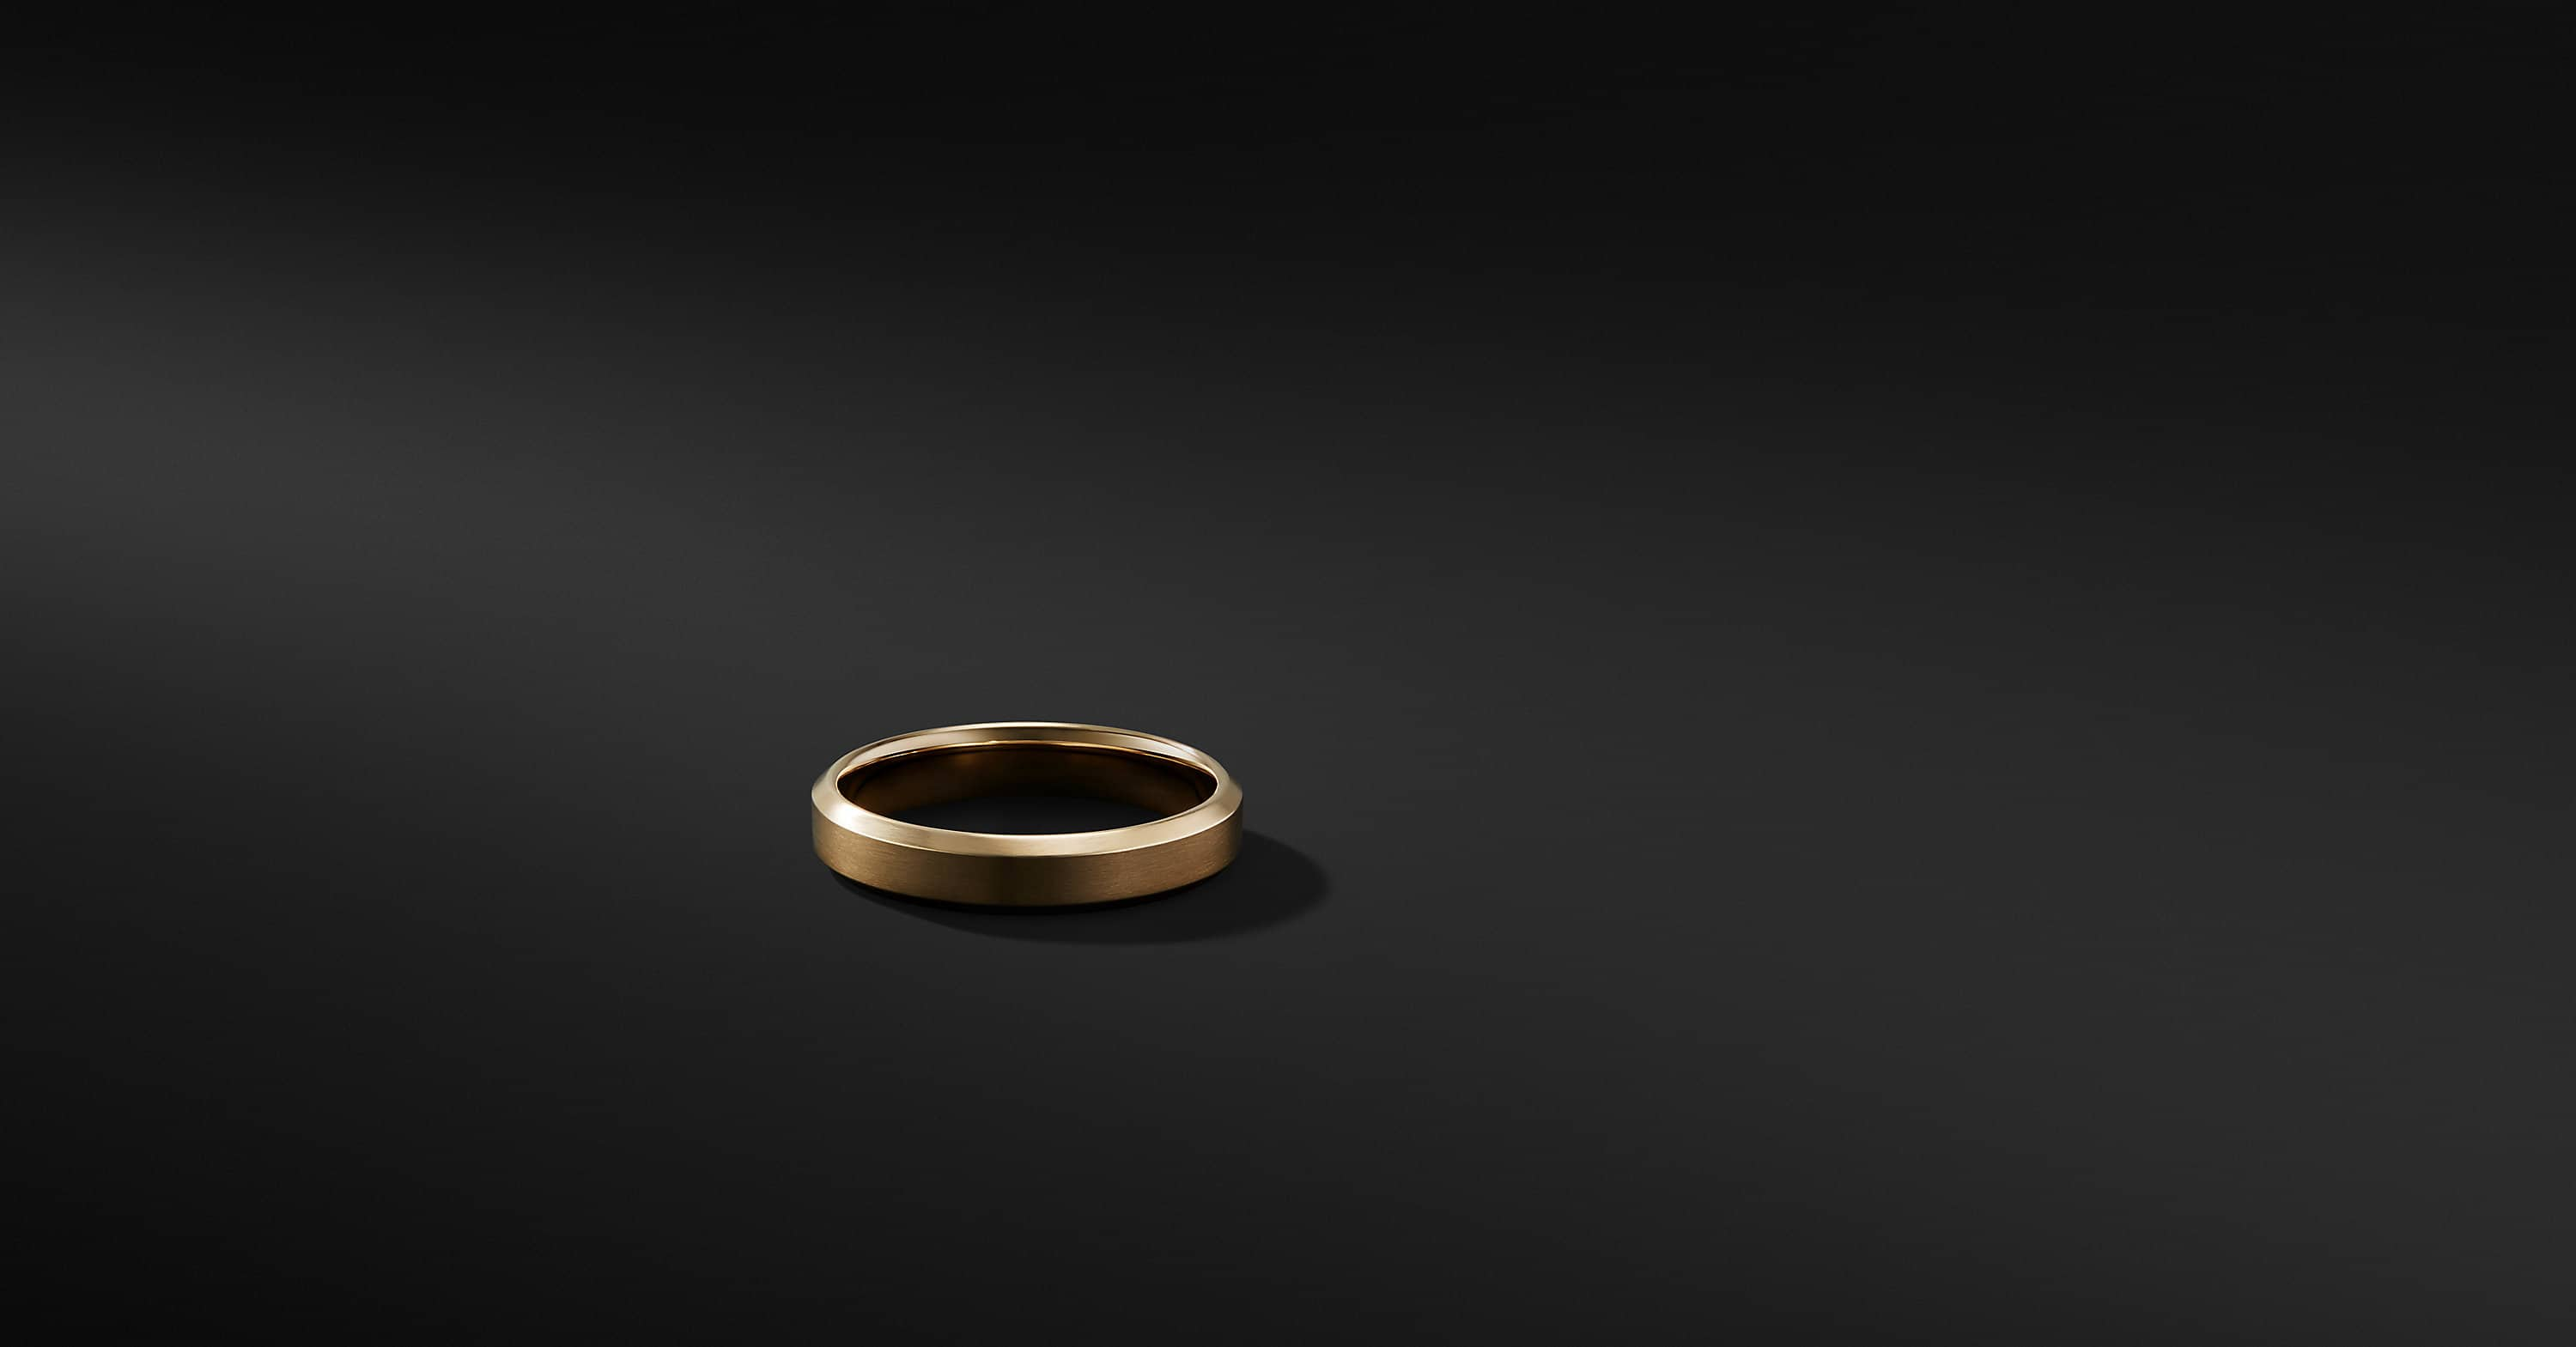 Beveled Band Ring in 18K Gold, 5mm